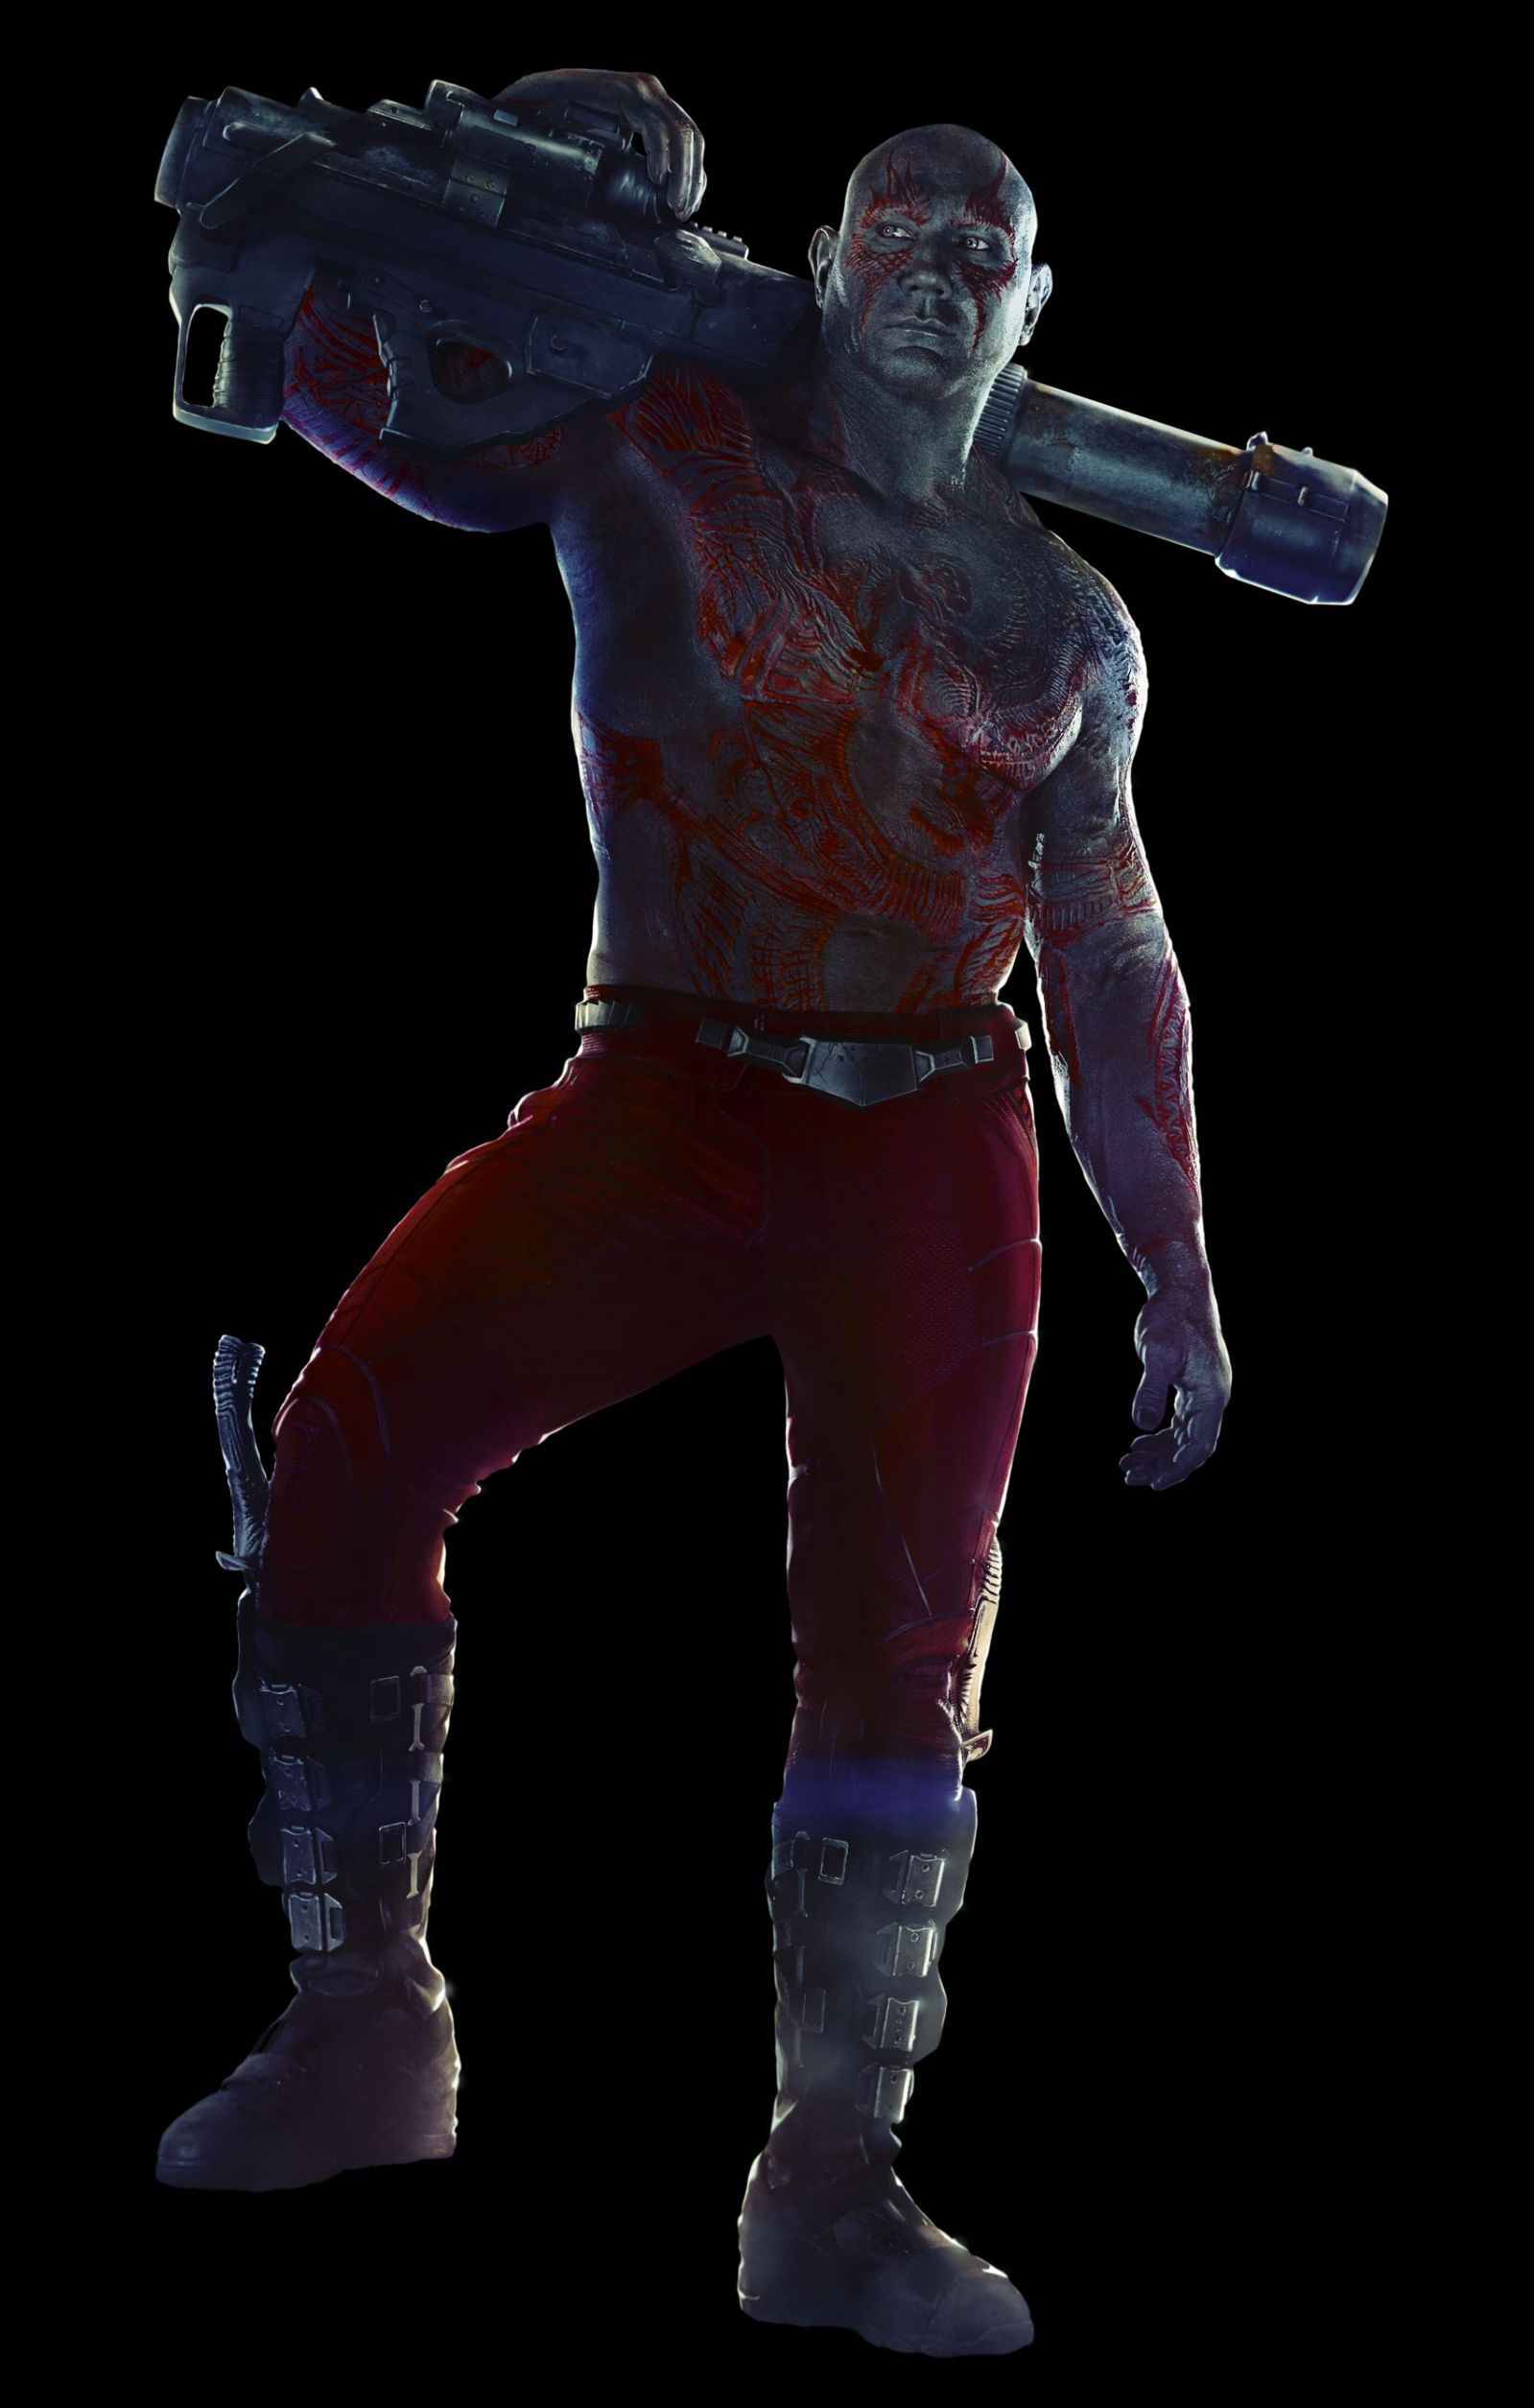 Dave Bautista as Drax the Destroyer character